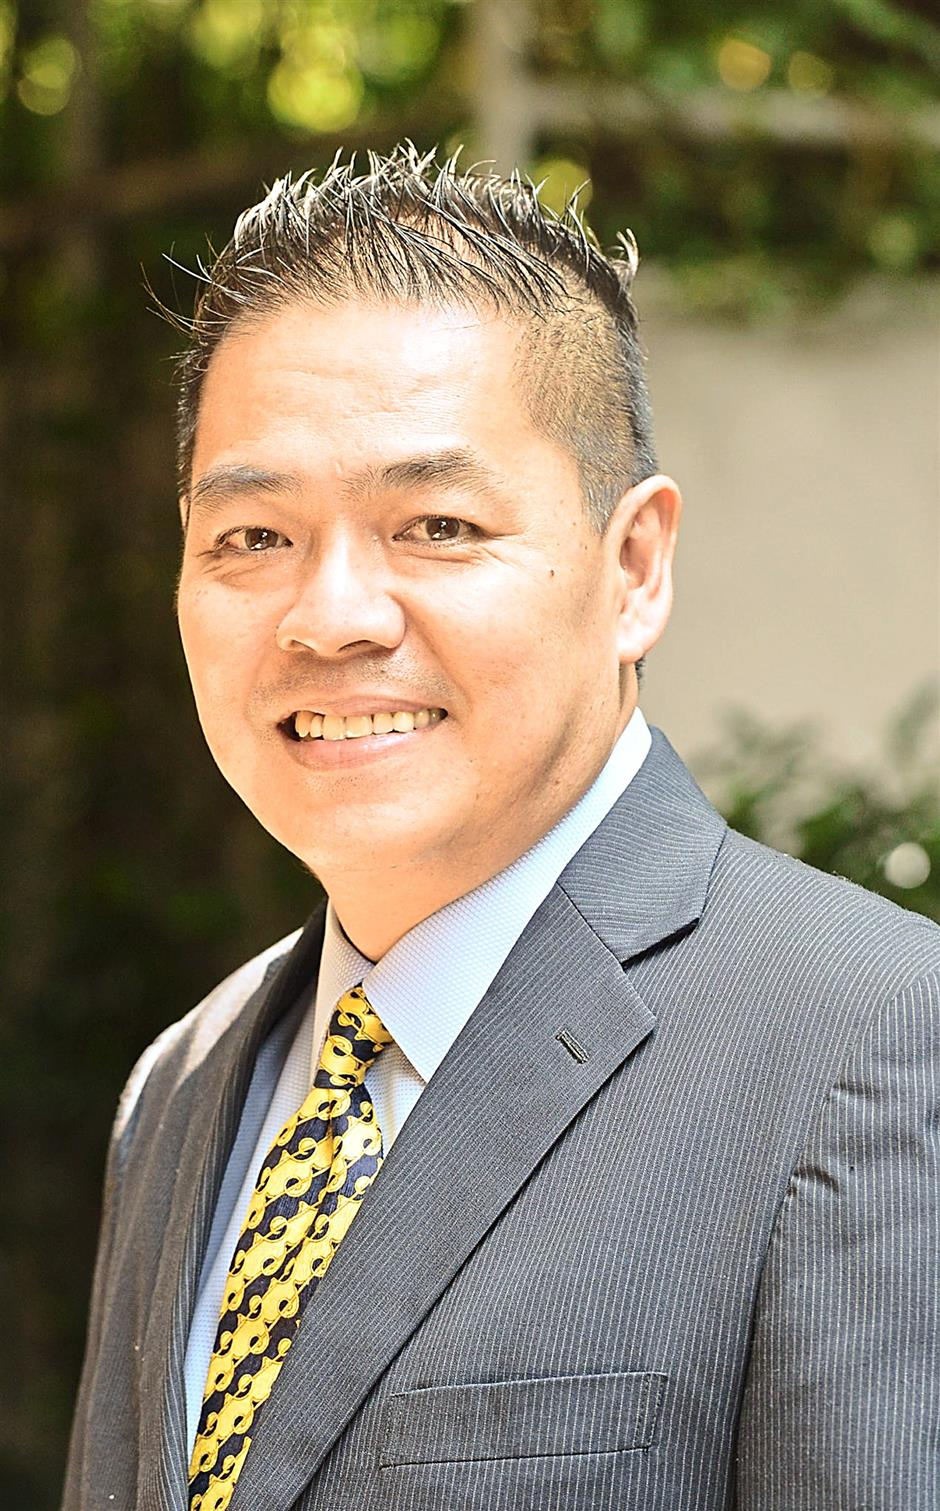 Fairlane Hospitality area general manager N K Yeoh. Fairlane Hospitality is the hospitality arm of property developer Low Yat Group